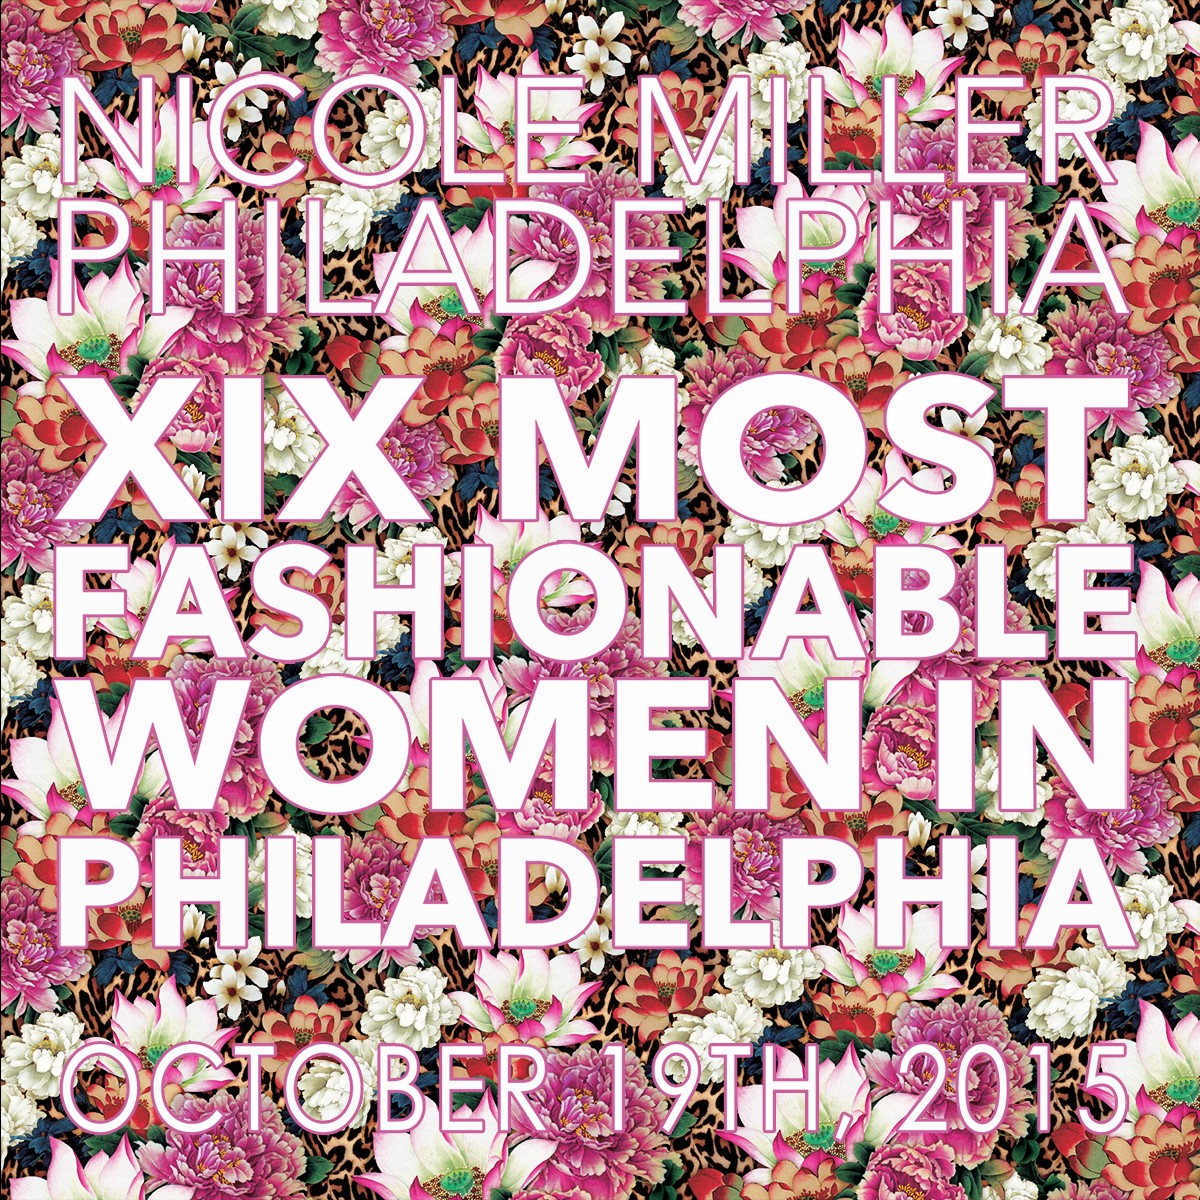 """The exclusive XIX Women designer event honors women not only for their individual sense of style, but also for their philanthropic dedication to Philadelphia and the surrounding community. The 2015 """"Visionary Award"""" will honor Restaurateur, Philanthropist, and Founder of FORK Restaurant, Ellen Yin, whose forward thinking ingenuity has shaped the future   fashionably  for Philadelphia."""